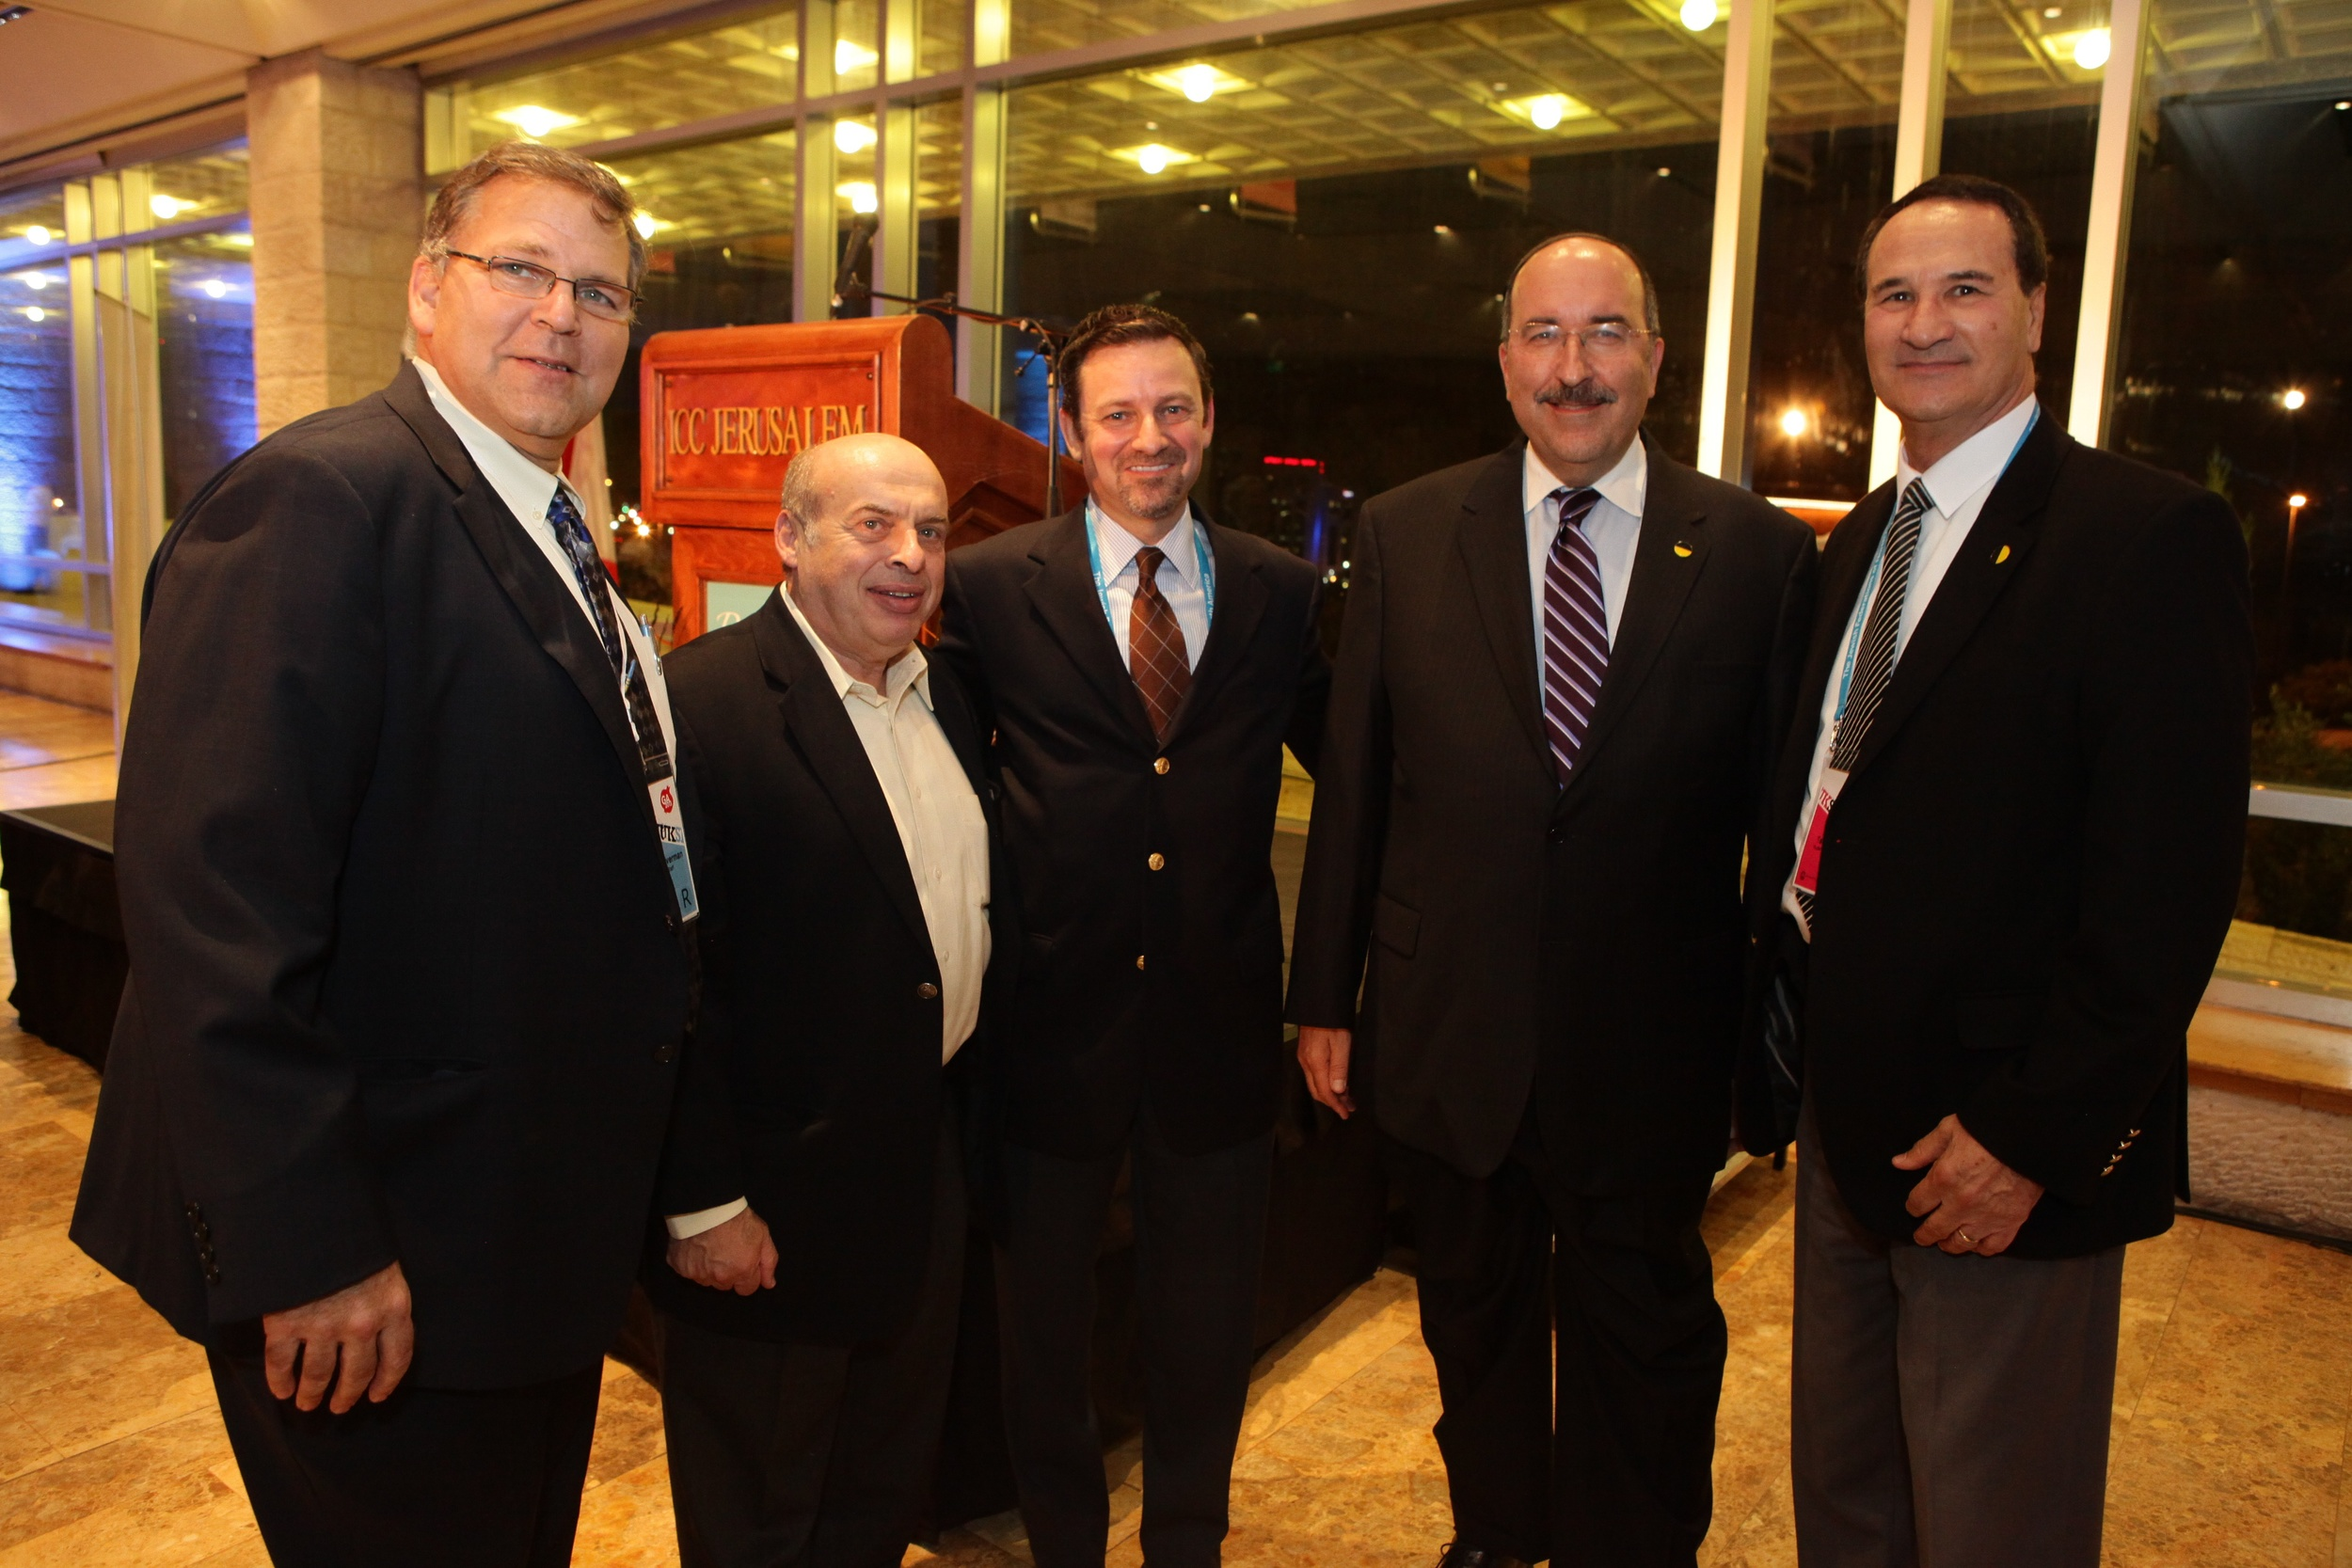 From left to right, at the Ruderman Family Foundation's reception before the Jewish Federations of North America (JFNA) General Assembly: Jerry Silverman, CEO of JFNA; Natan Sharansky, Chairman of the Jewish Agency for Israel; Jay Ruderman, president of the Ruderman Family Foundation; Dr. Dore Gold, former Israeli Ambassador to the UN, and Tal Brody, former Israeli basketball star and current Goodwill Ambassador of Israel. Credit: Yissachar Ruas.